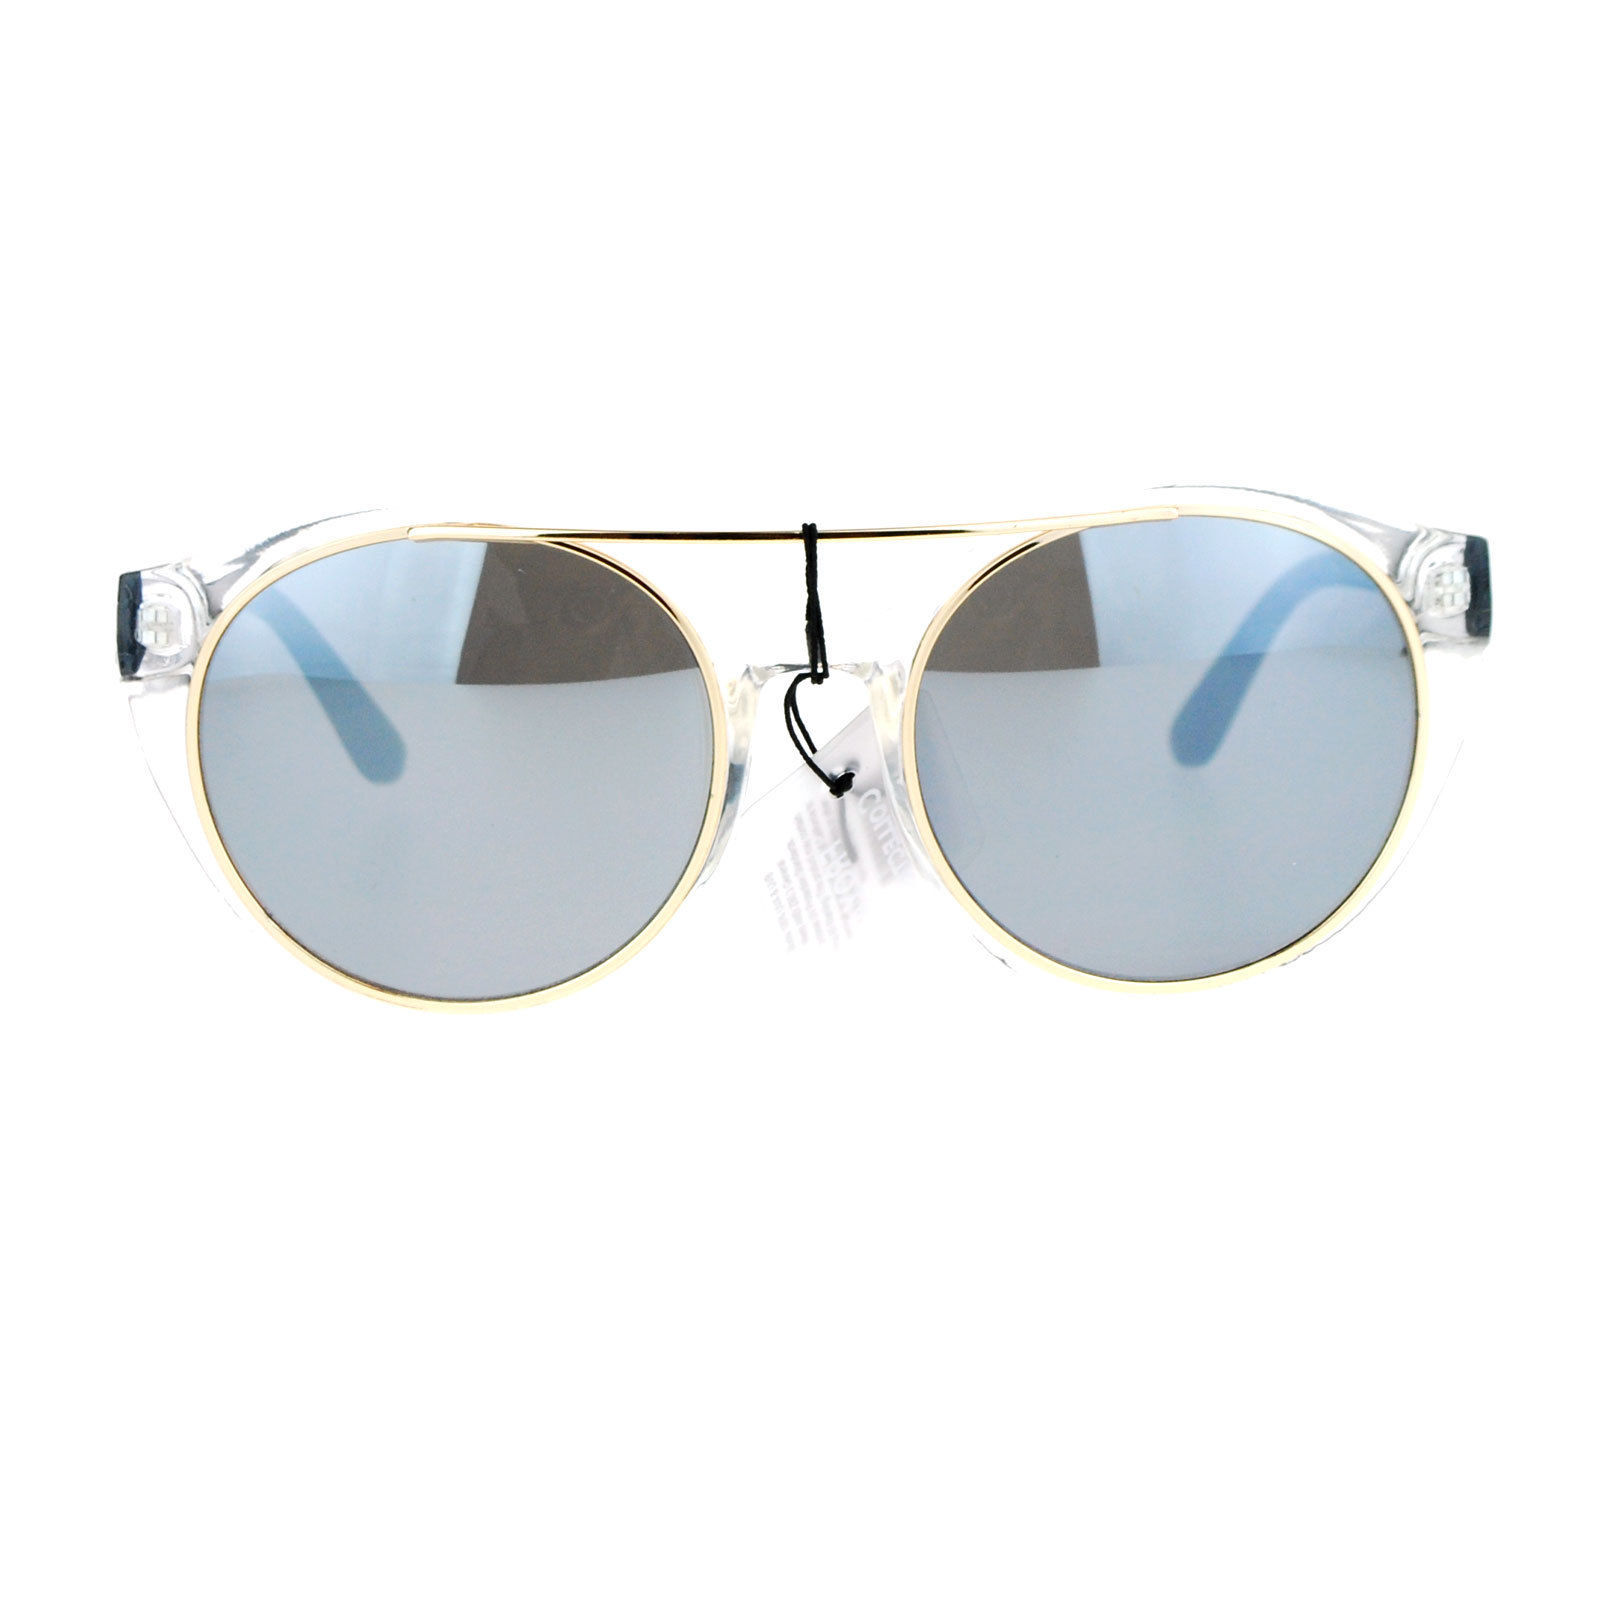 Womens Sunglasses Unique Wing Frame Metal Outline Stylish Shades